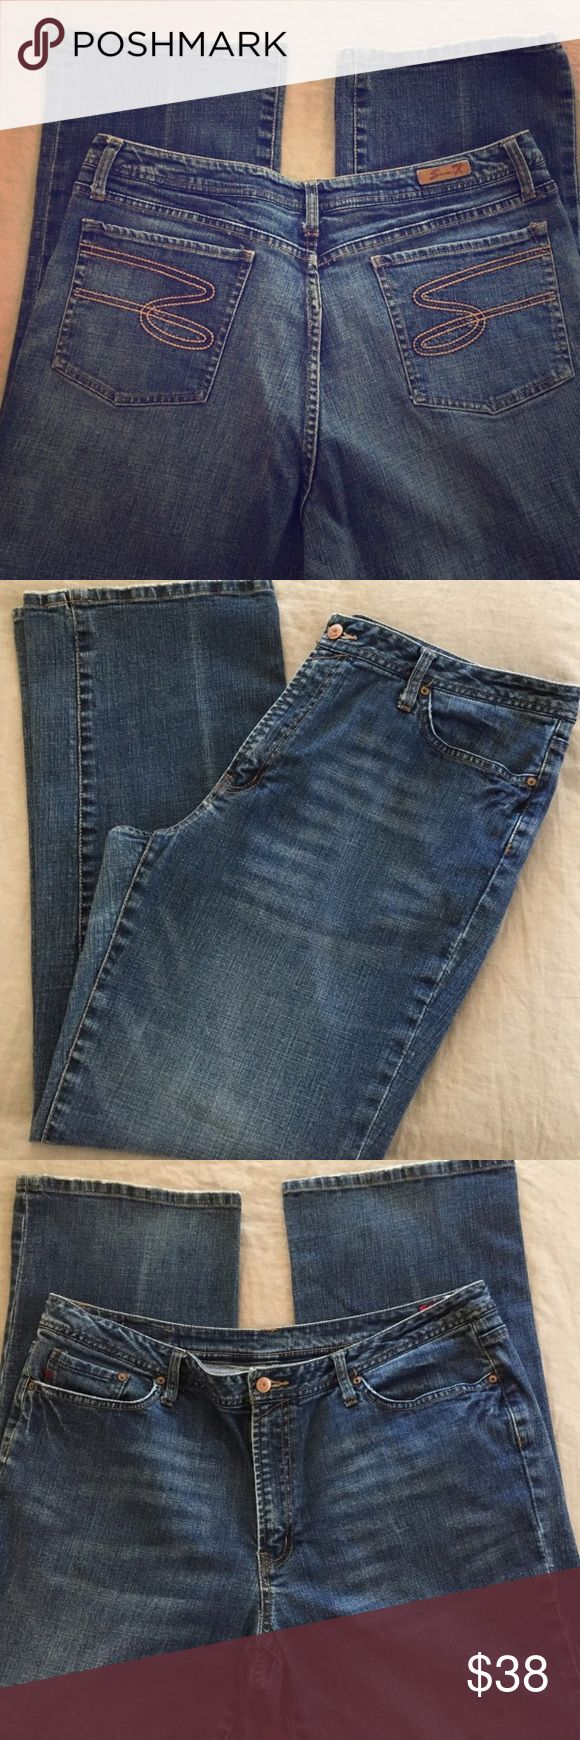 Seven plus size jeans Size 22 seven plus size  boot cut jeans. Pre owner but still has a lot of life left. See photos for details! Seven7 Jeans Boot Cut